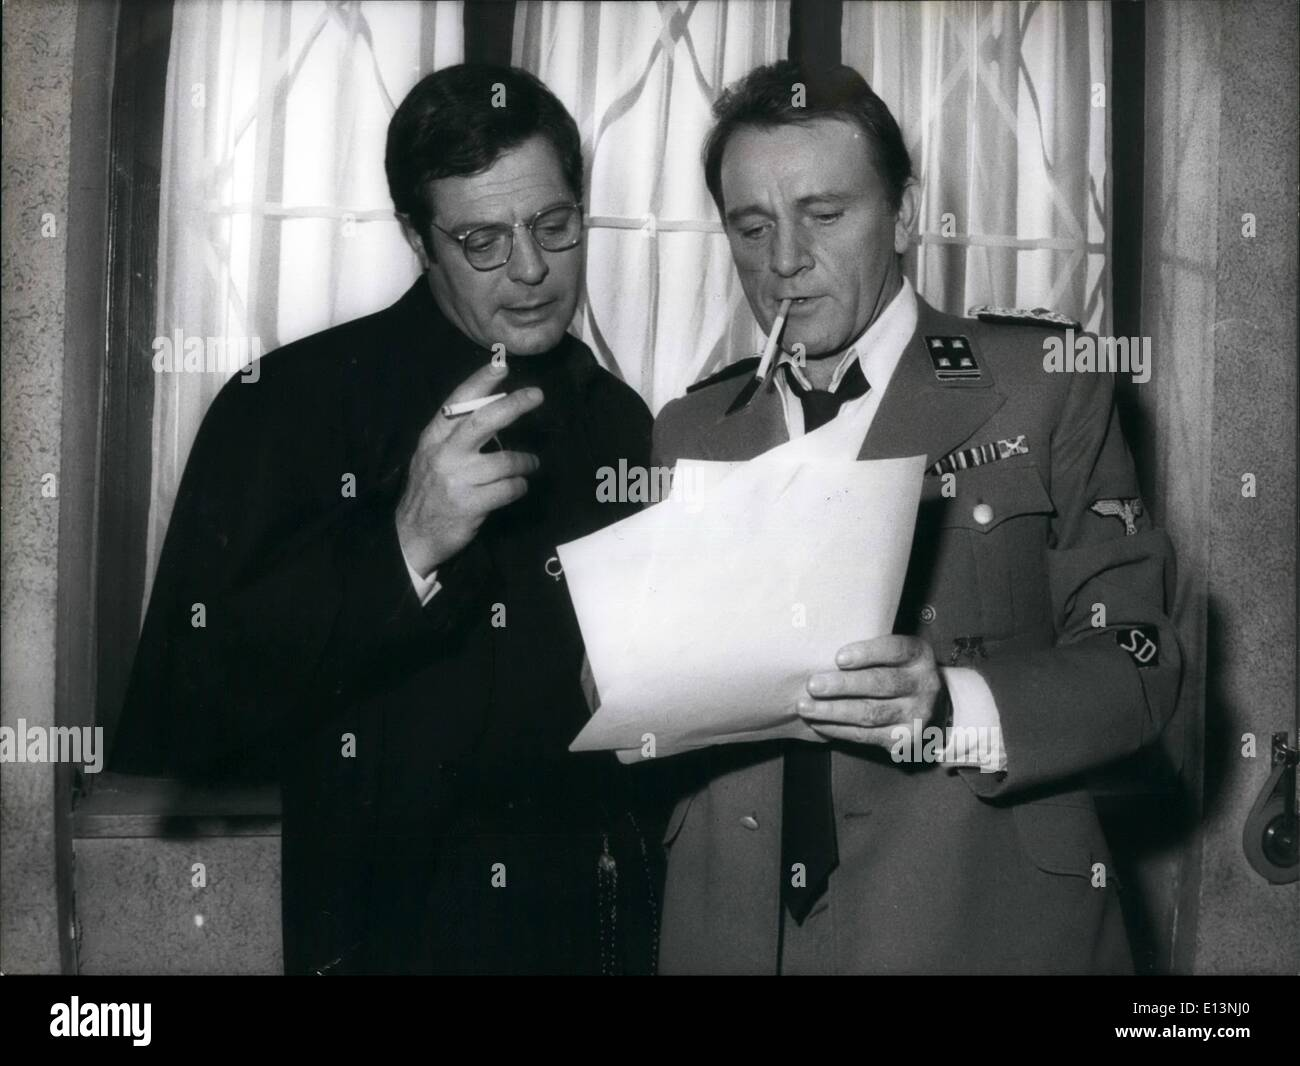 Mar. 22, 2012 - British actor Richard Burton and Marcello Mastroianni are turning the film ''Death in Rome'' draft by the Robert Katz's book that concerns the attempt of Via Rasella in Rome where 33 German soldiers were killed and 335 hostages were shot at the Fosse Ardeatine, near the town. Burton plays the role of the SS colonel Manfred Kappler who ordered the reprisal and Marcello Mastroianni plays the role of a partisan priest Don Pietro. The film is directed by Yorgo Pan Cosmatos (with moustaches in some photos) - Stock Image